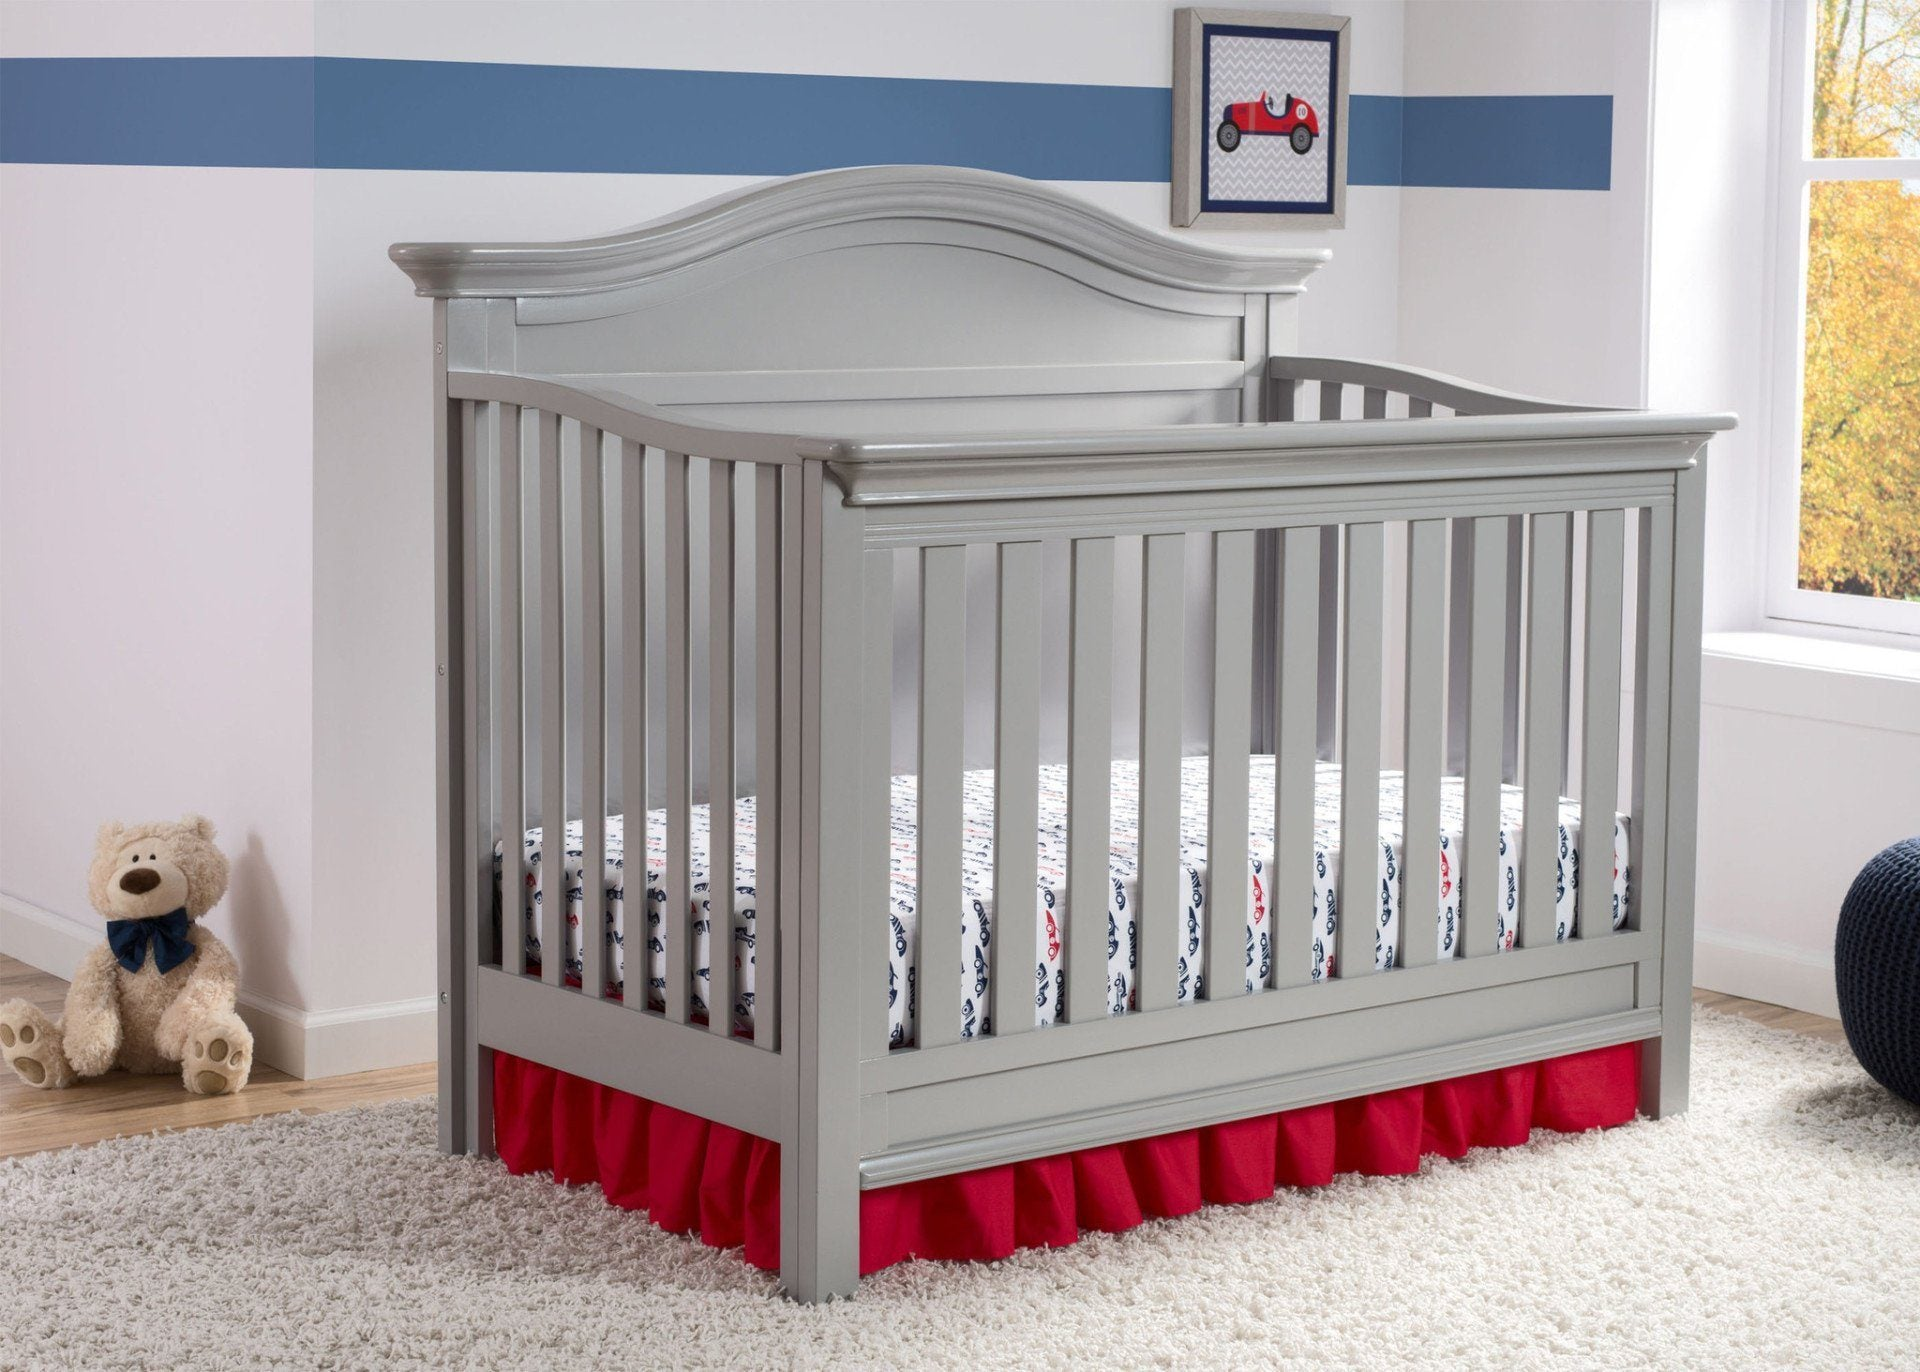 Serta Grey (026) Bethpage 4-in-1 Crib, Hangtag View a2a